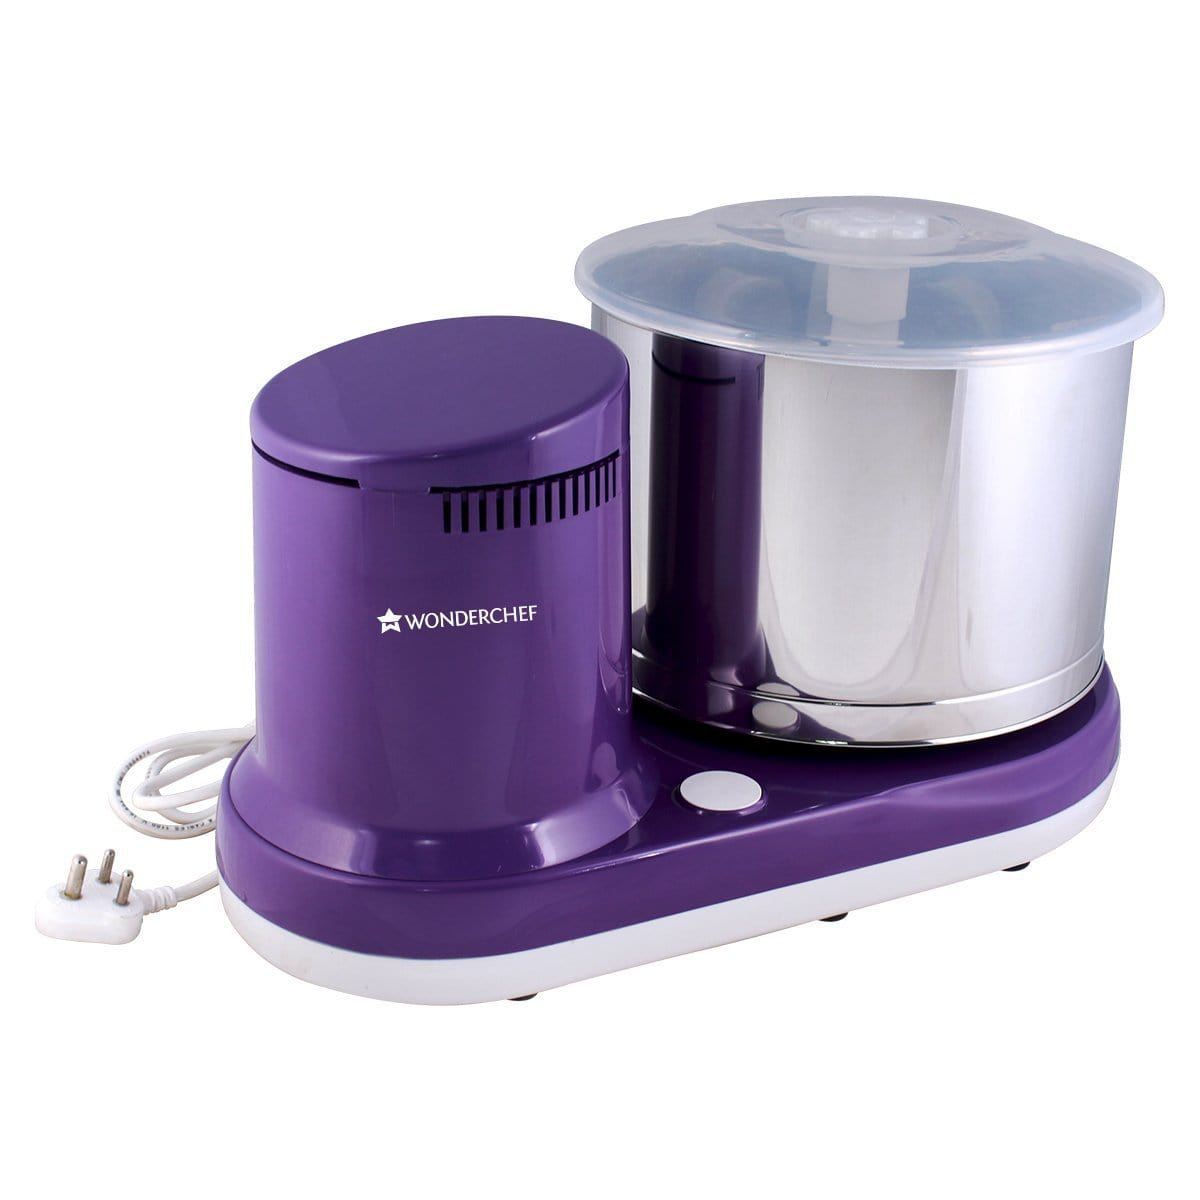 Wonderchef Maxima Wet Grinder 2 L